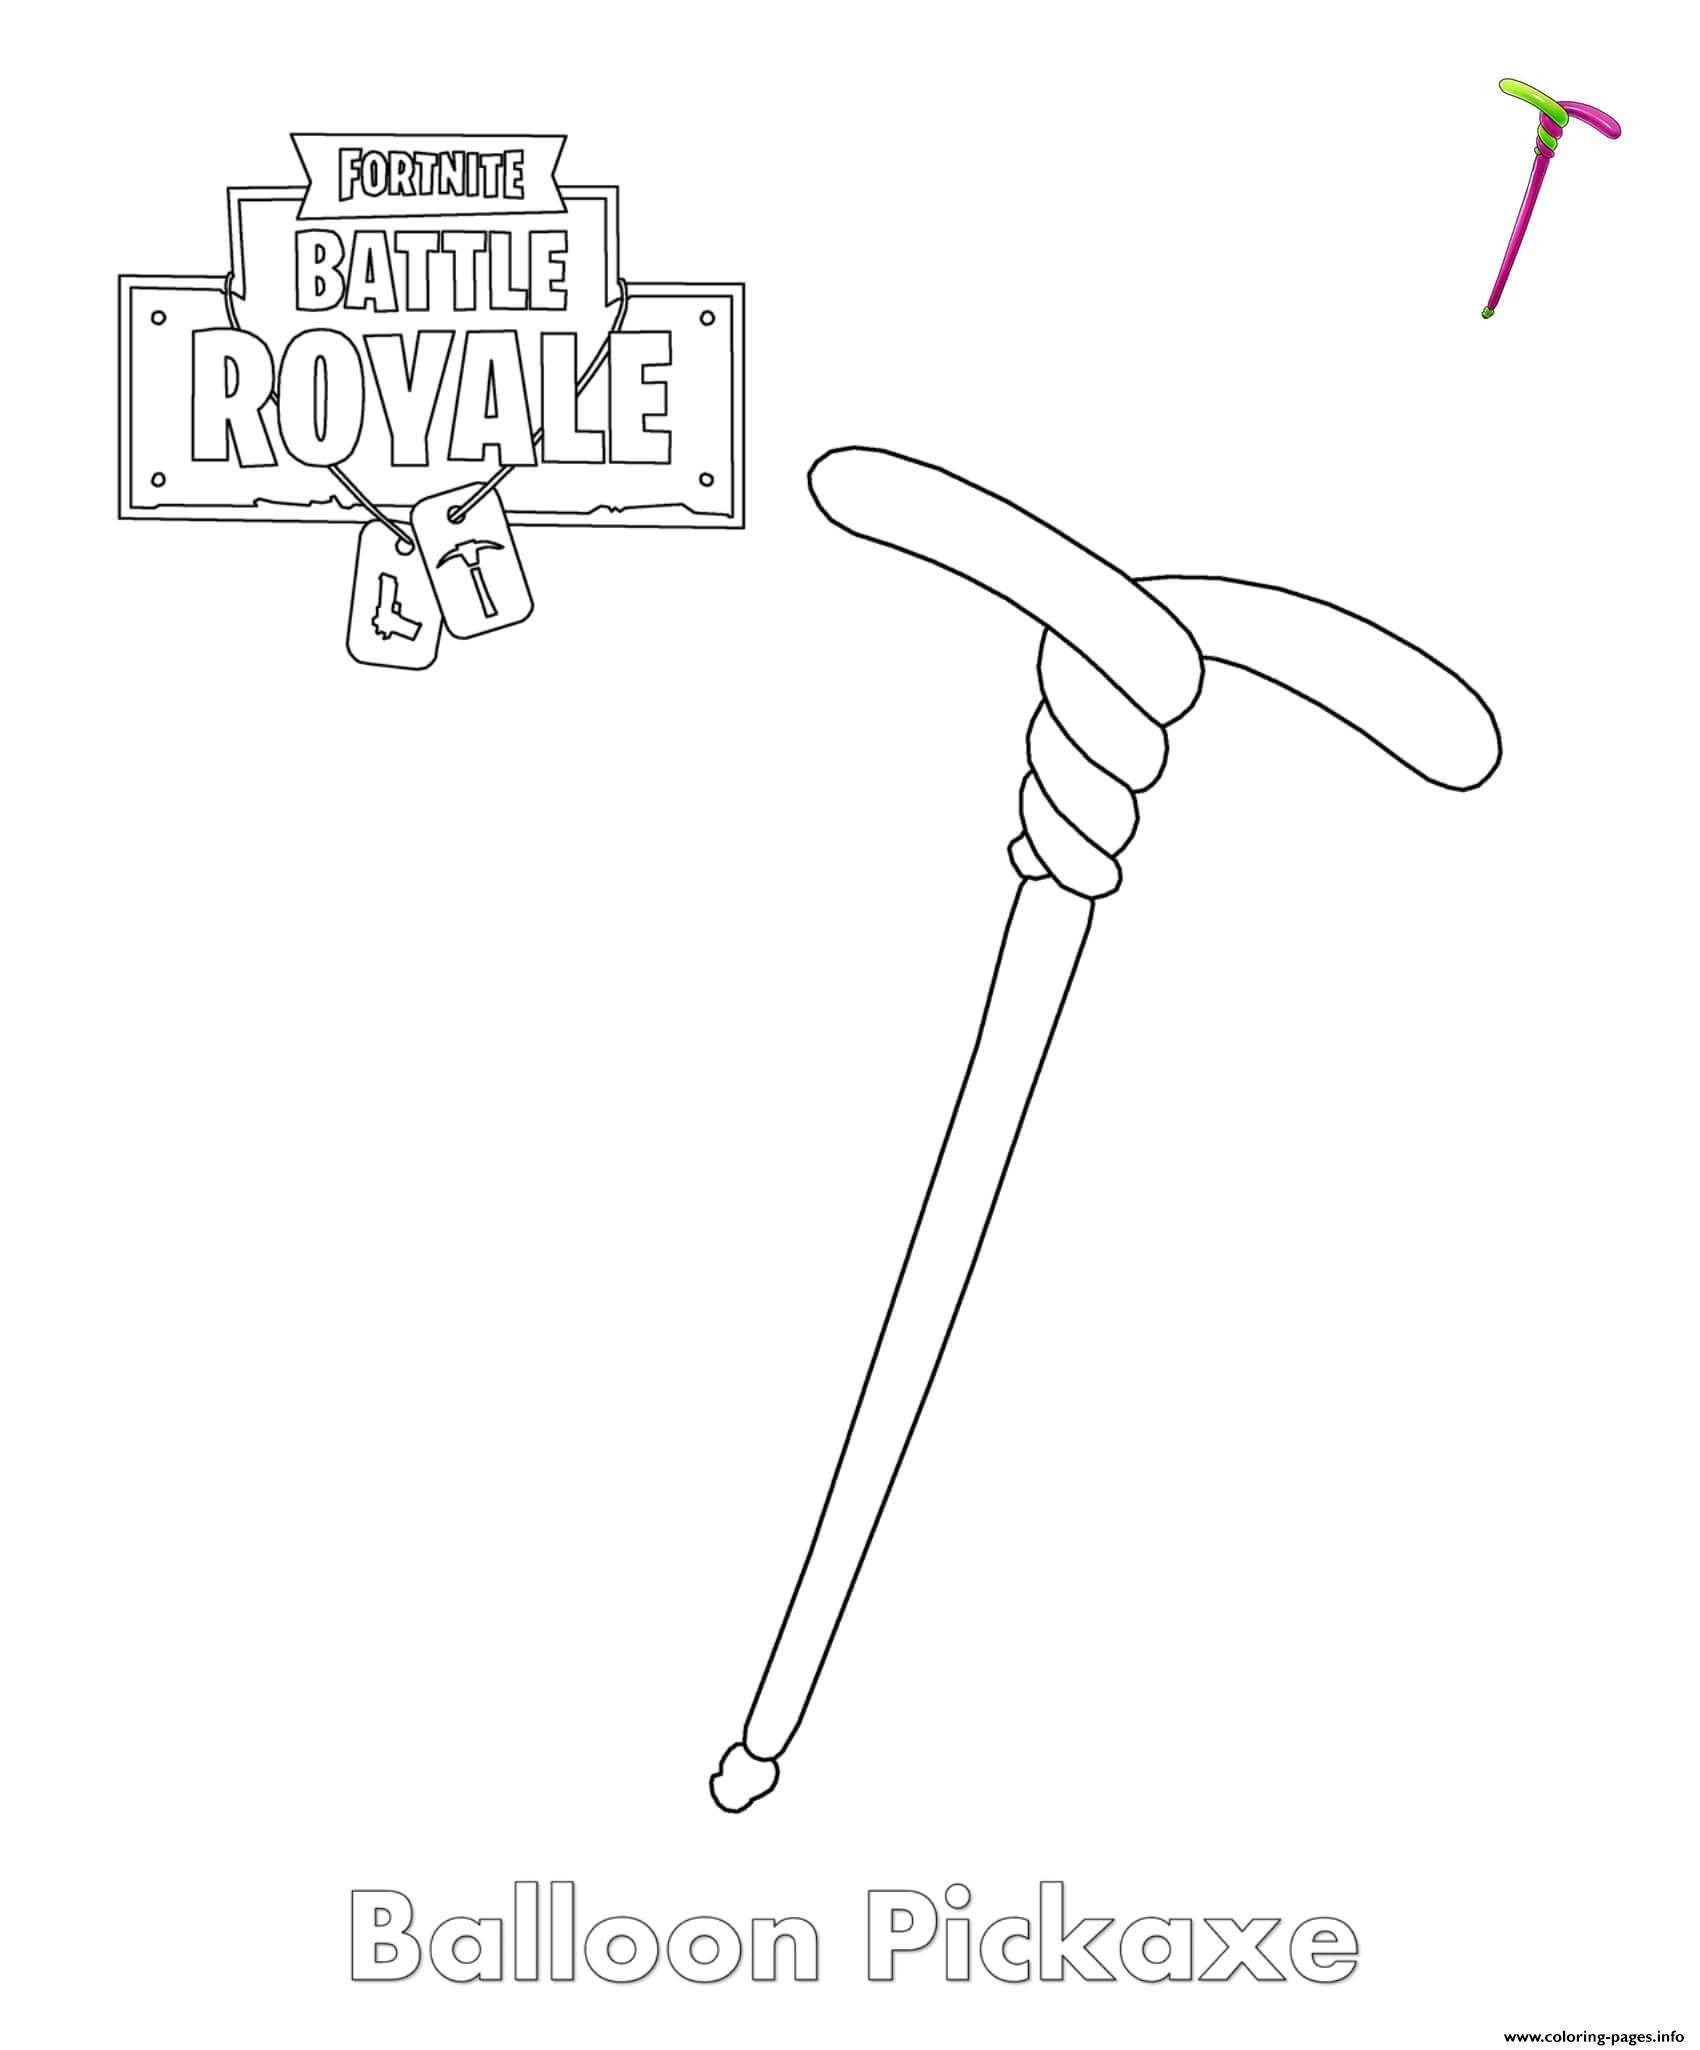 Fortnite Balloon Pickaxe Item Coloring